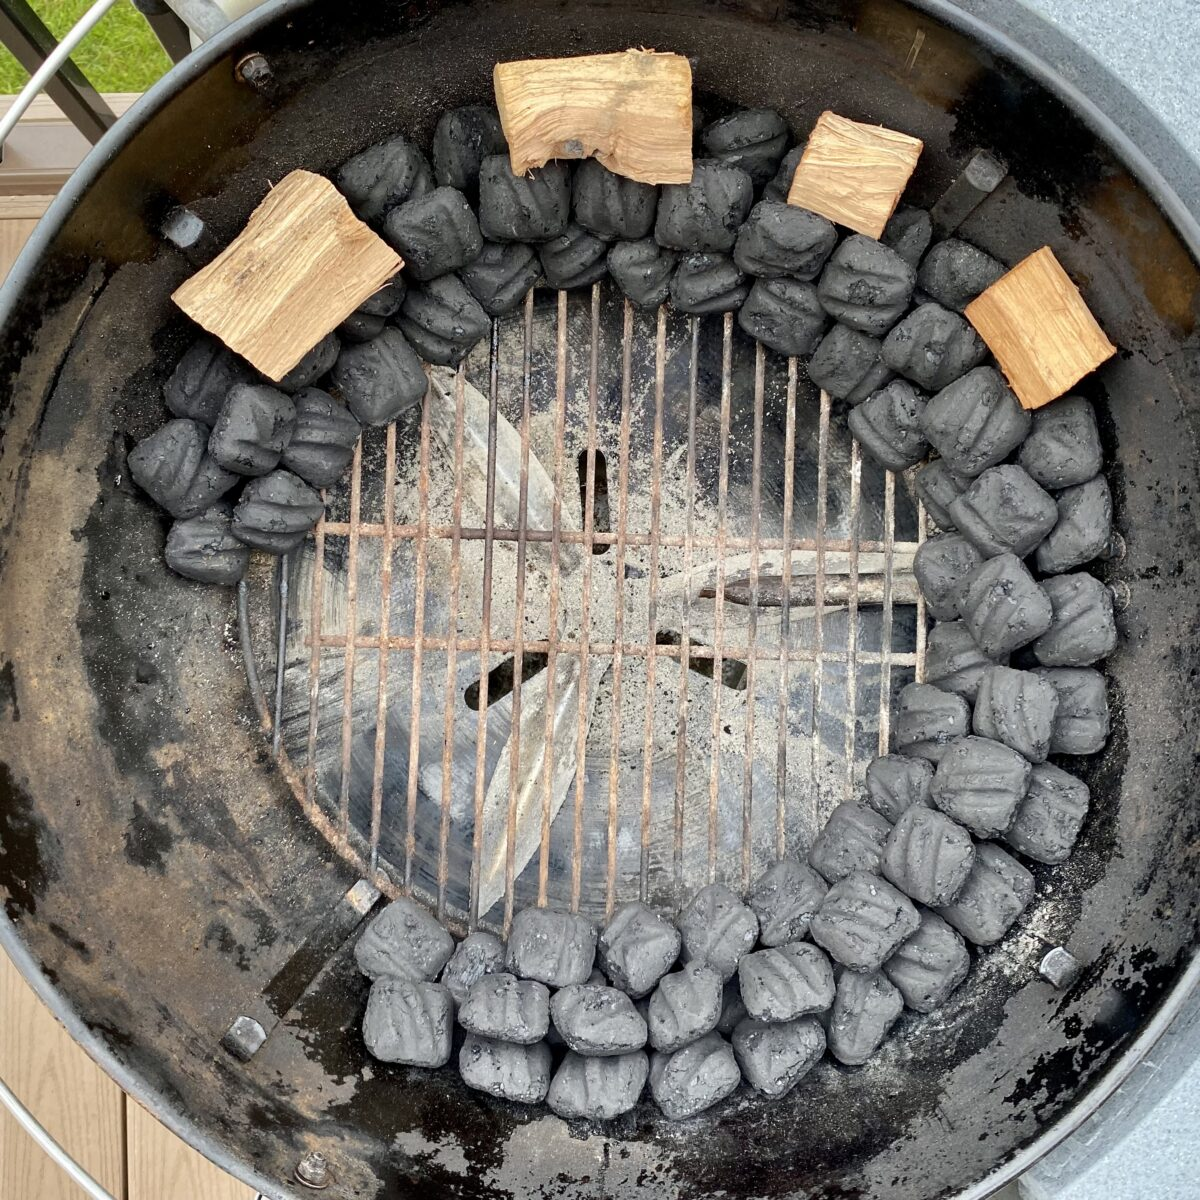 Overhead view showing four smoke wood chunks placed on the snake of unlit coals around the charcoal chamber.  Wood chunks cover about half the length of the snake of coals.